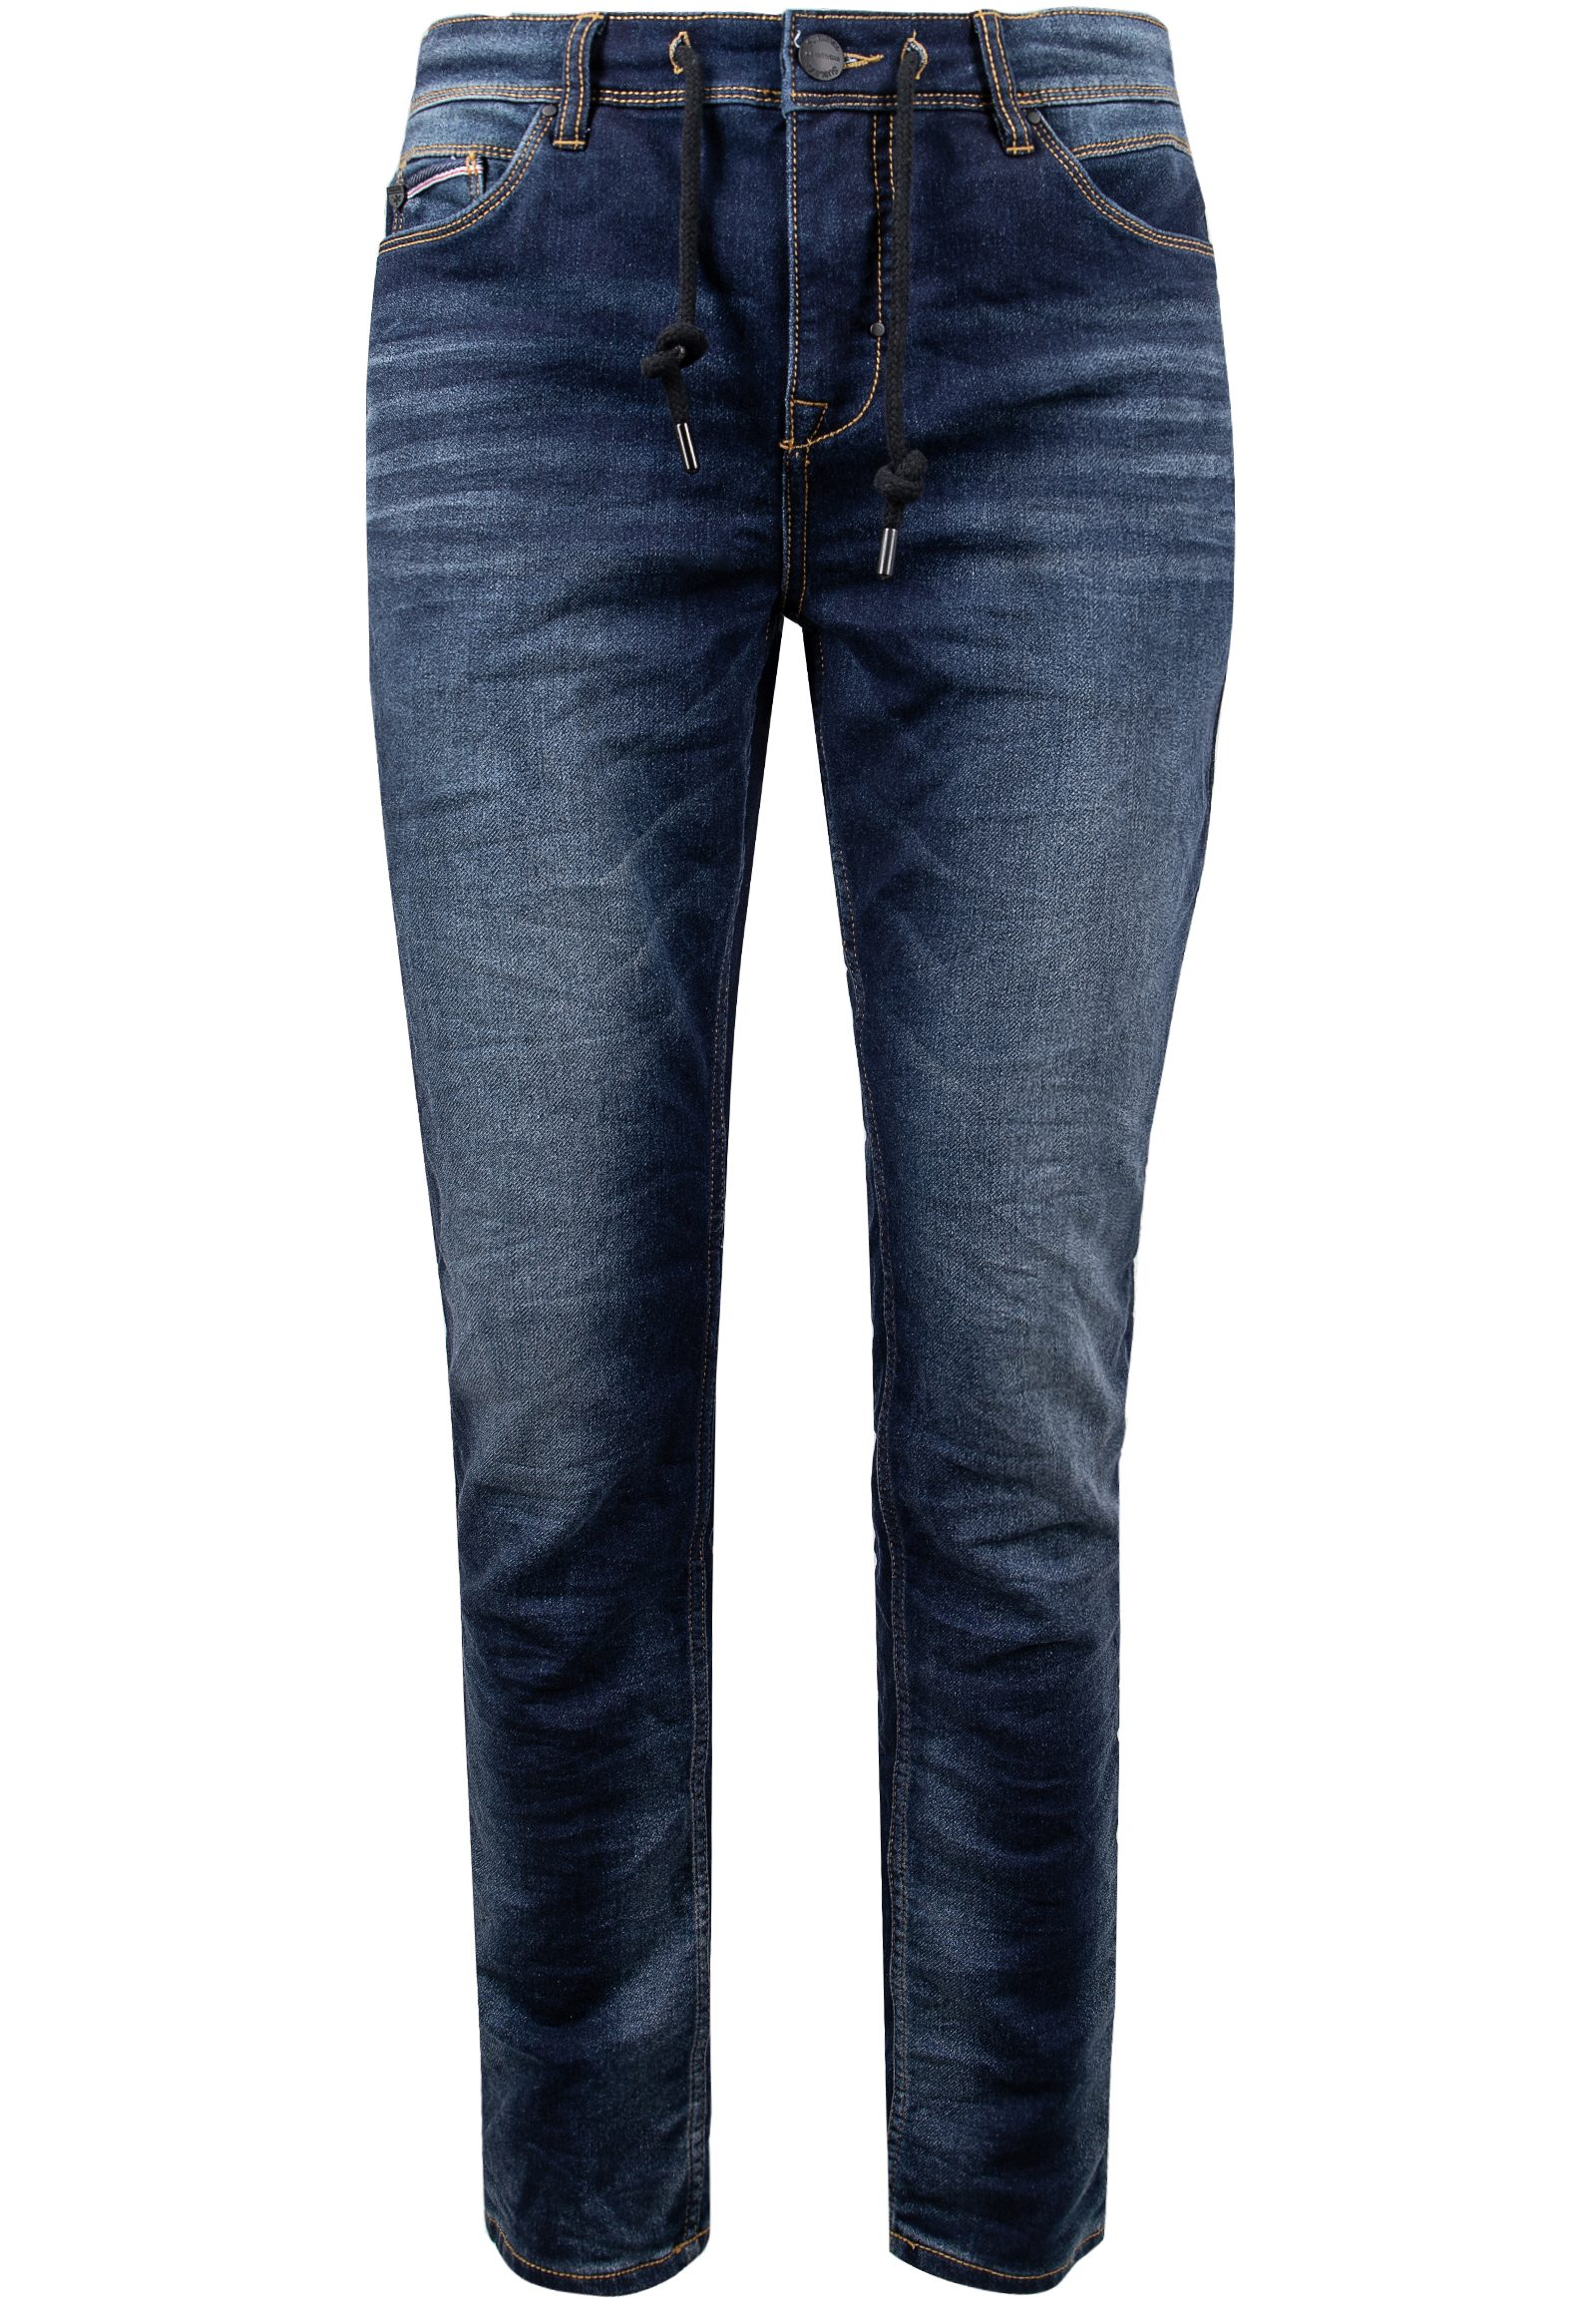 Vorschau: 5-pocket Slim-Fit Jeans